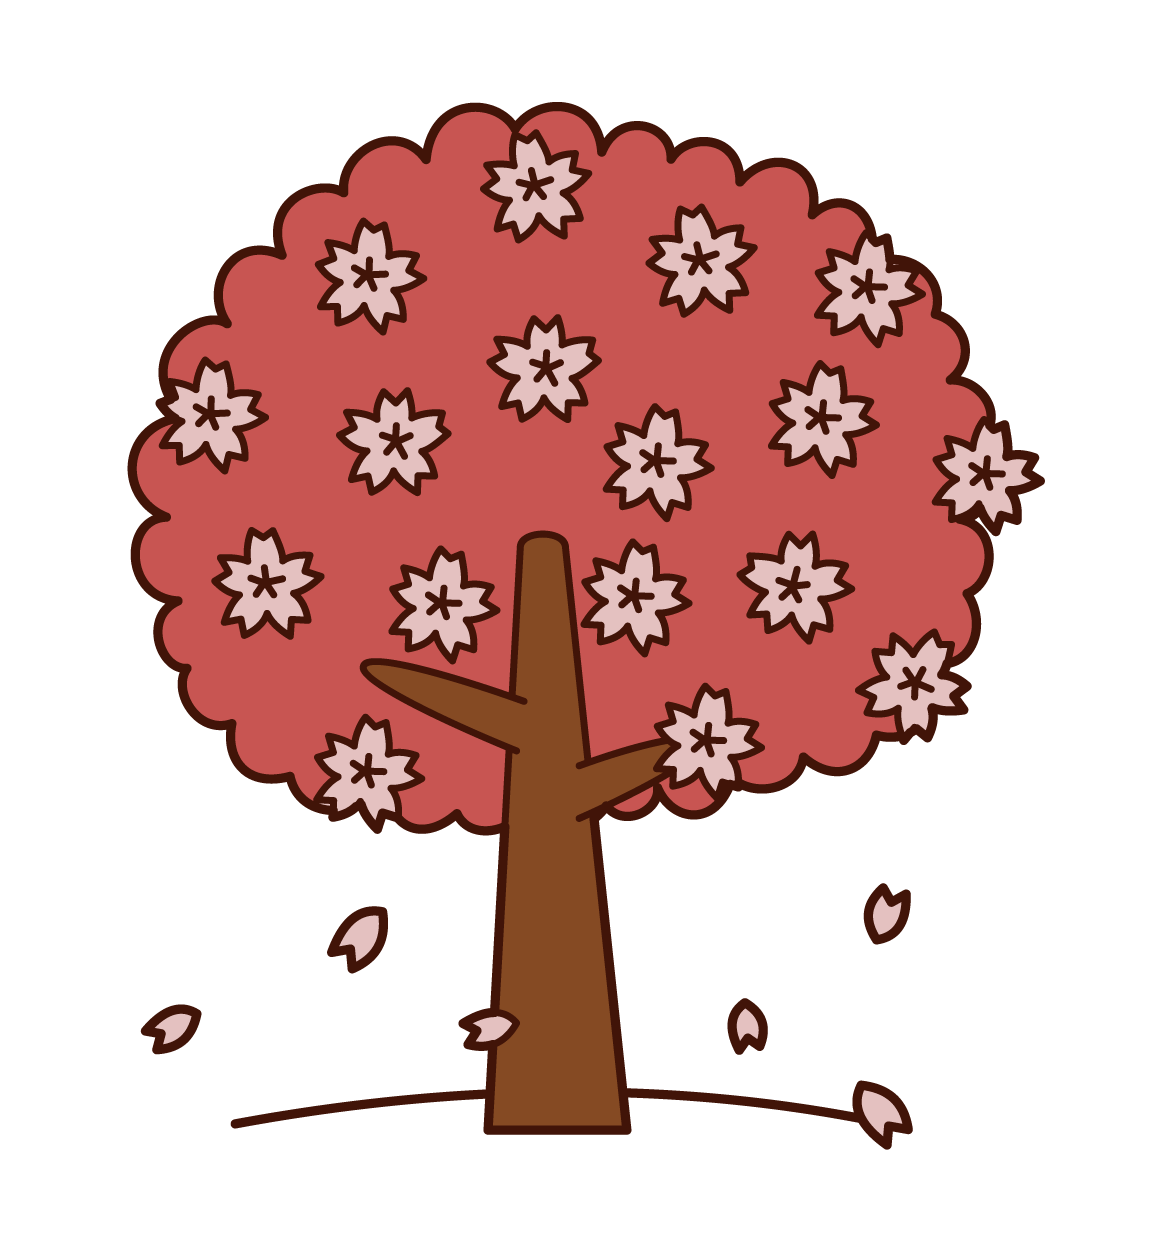 Illustration of cherry tree